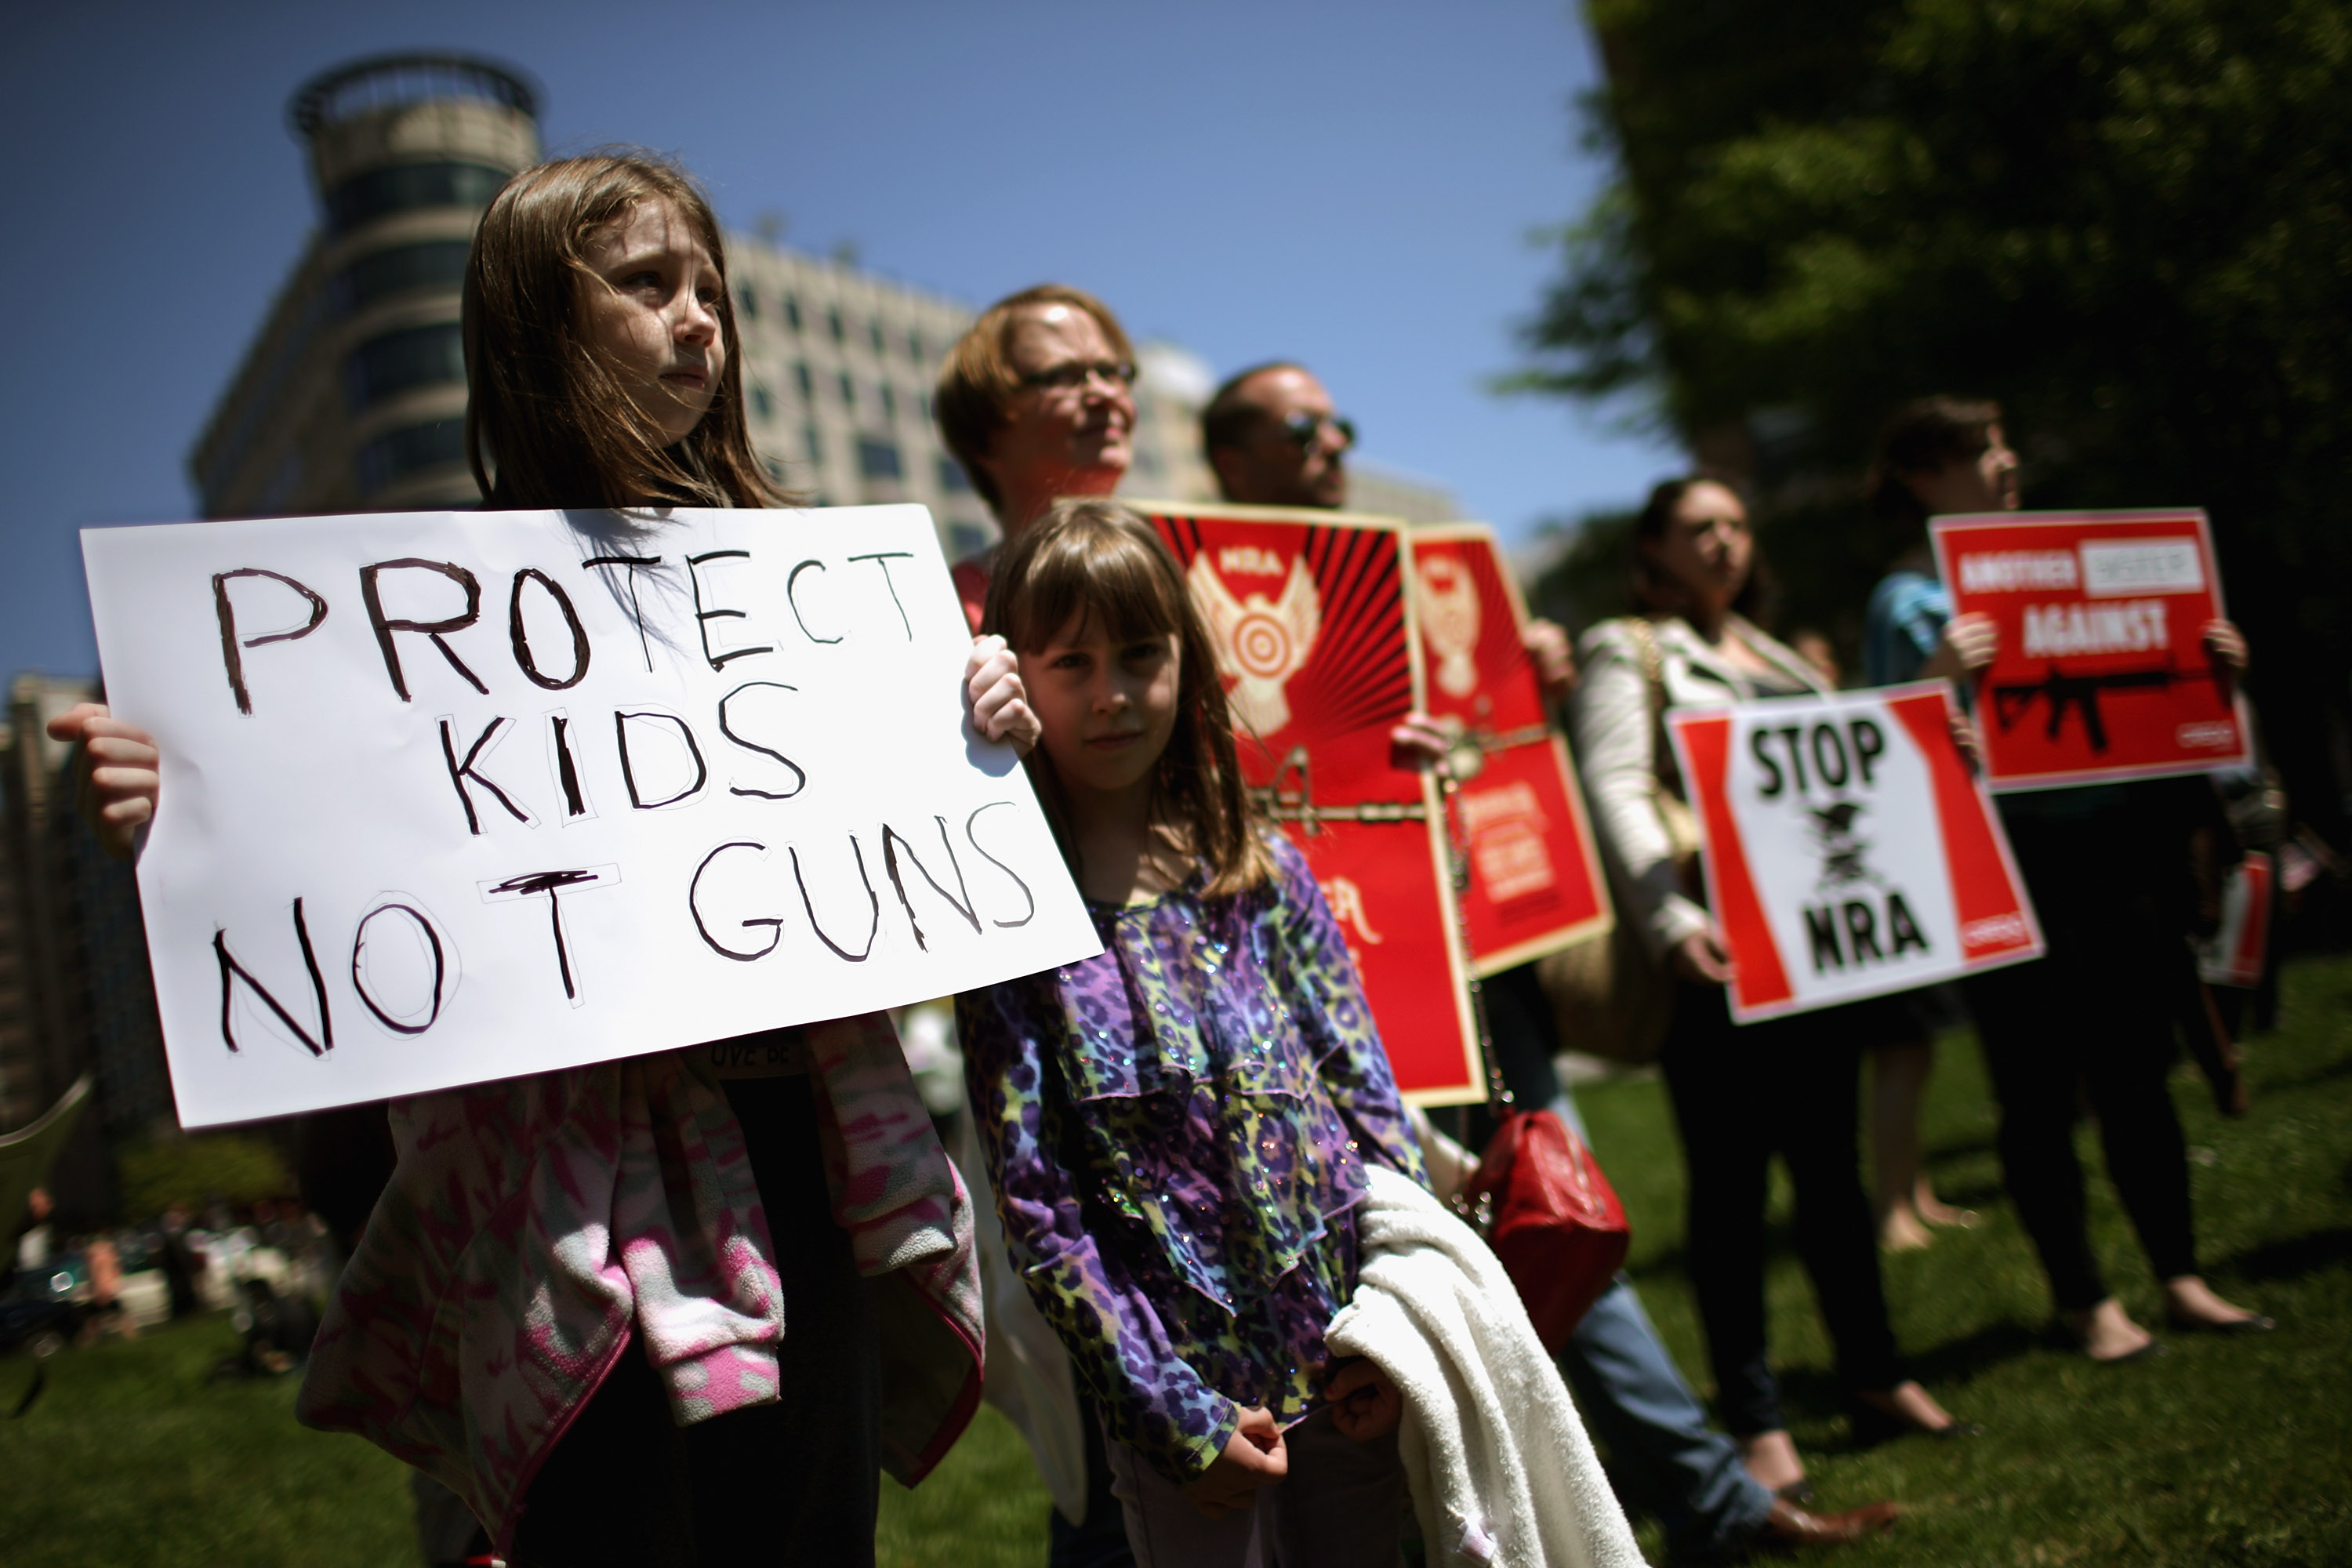 Proponents Of Increased Gun Control Laws Demonstrate In Washington